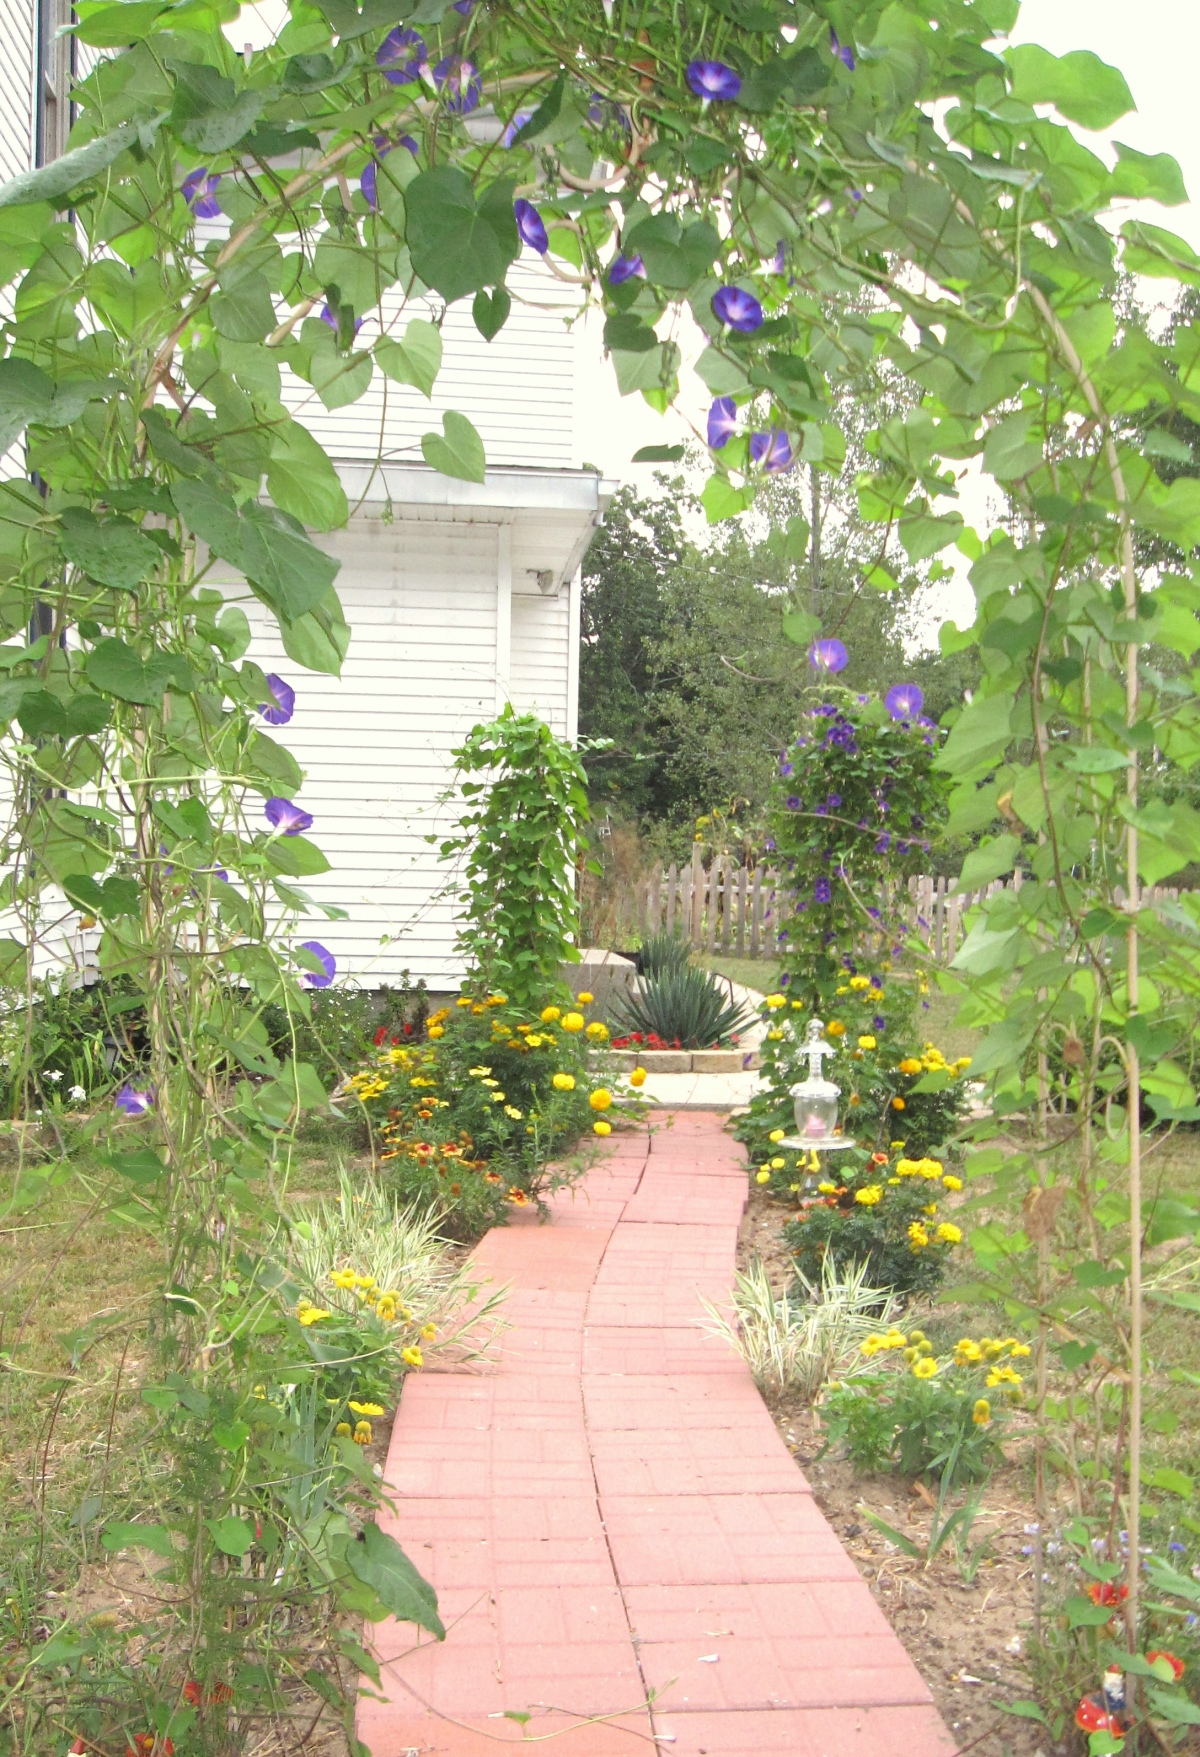 Walk among old-time morning glories and marigolds in your summer approach to Amanda's Bequest.